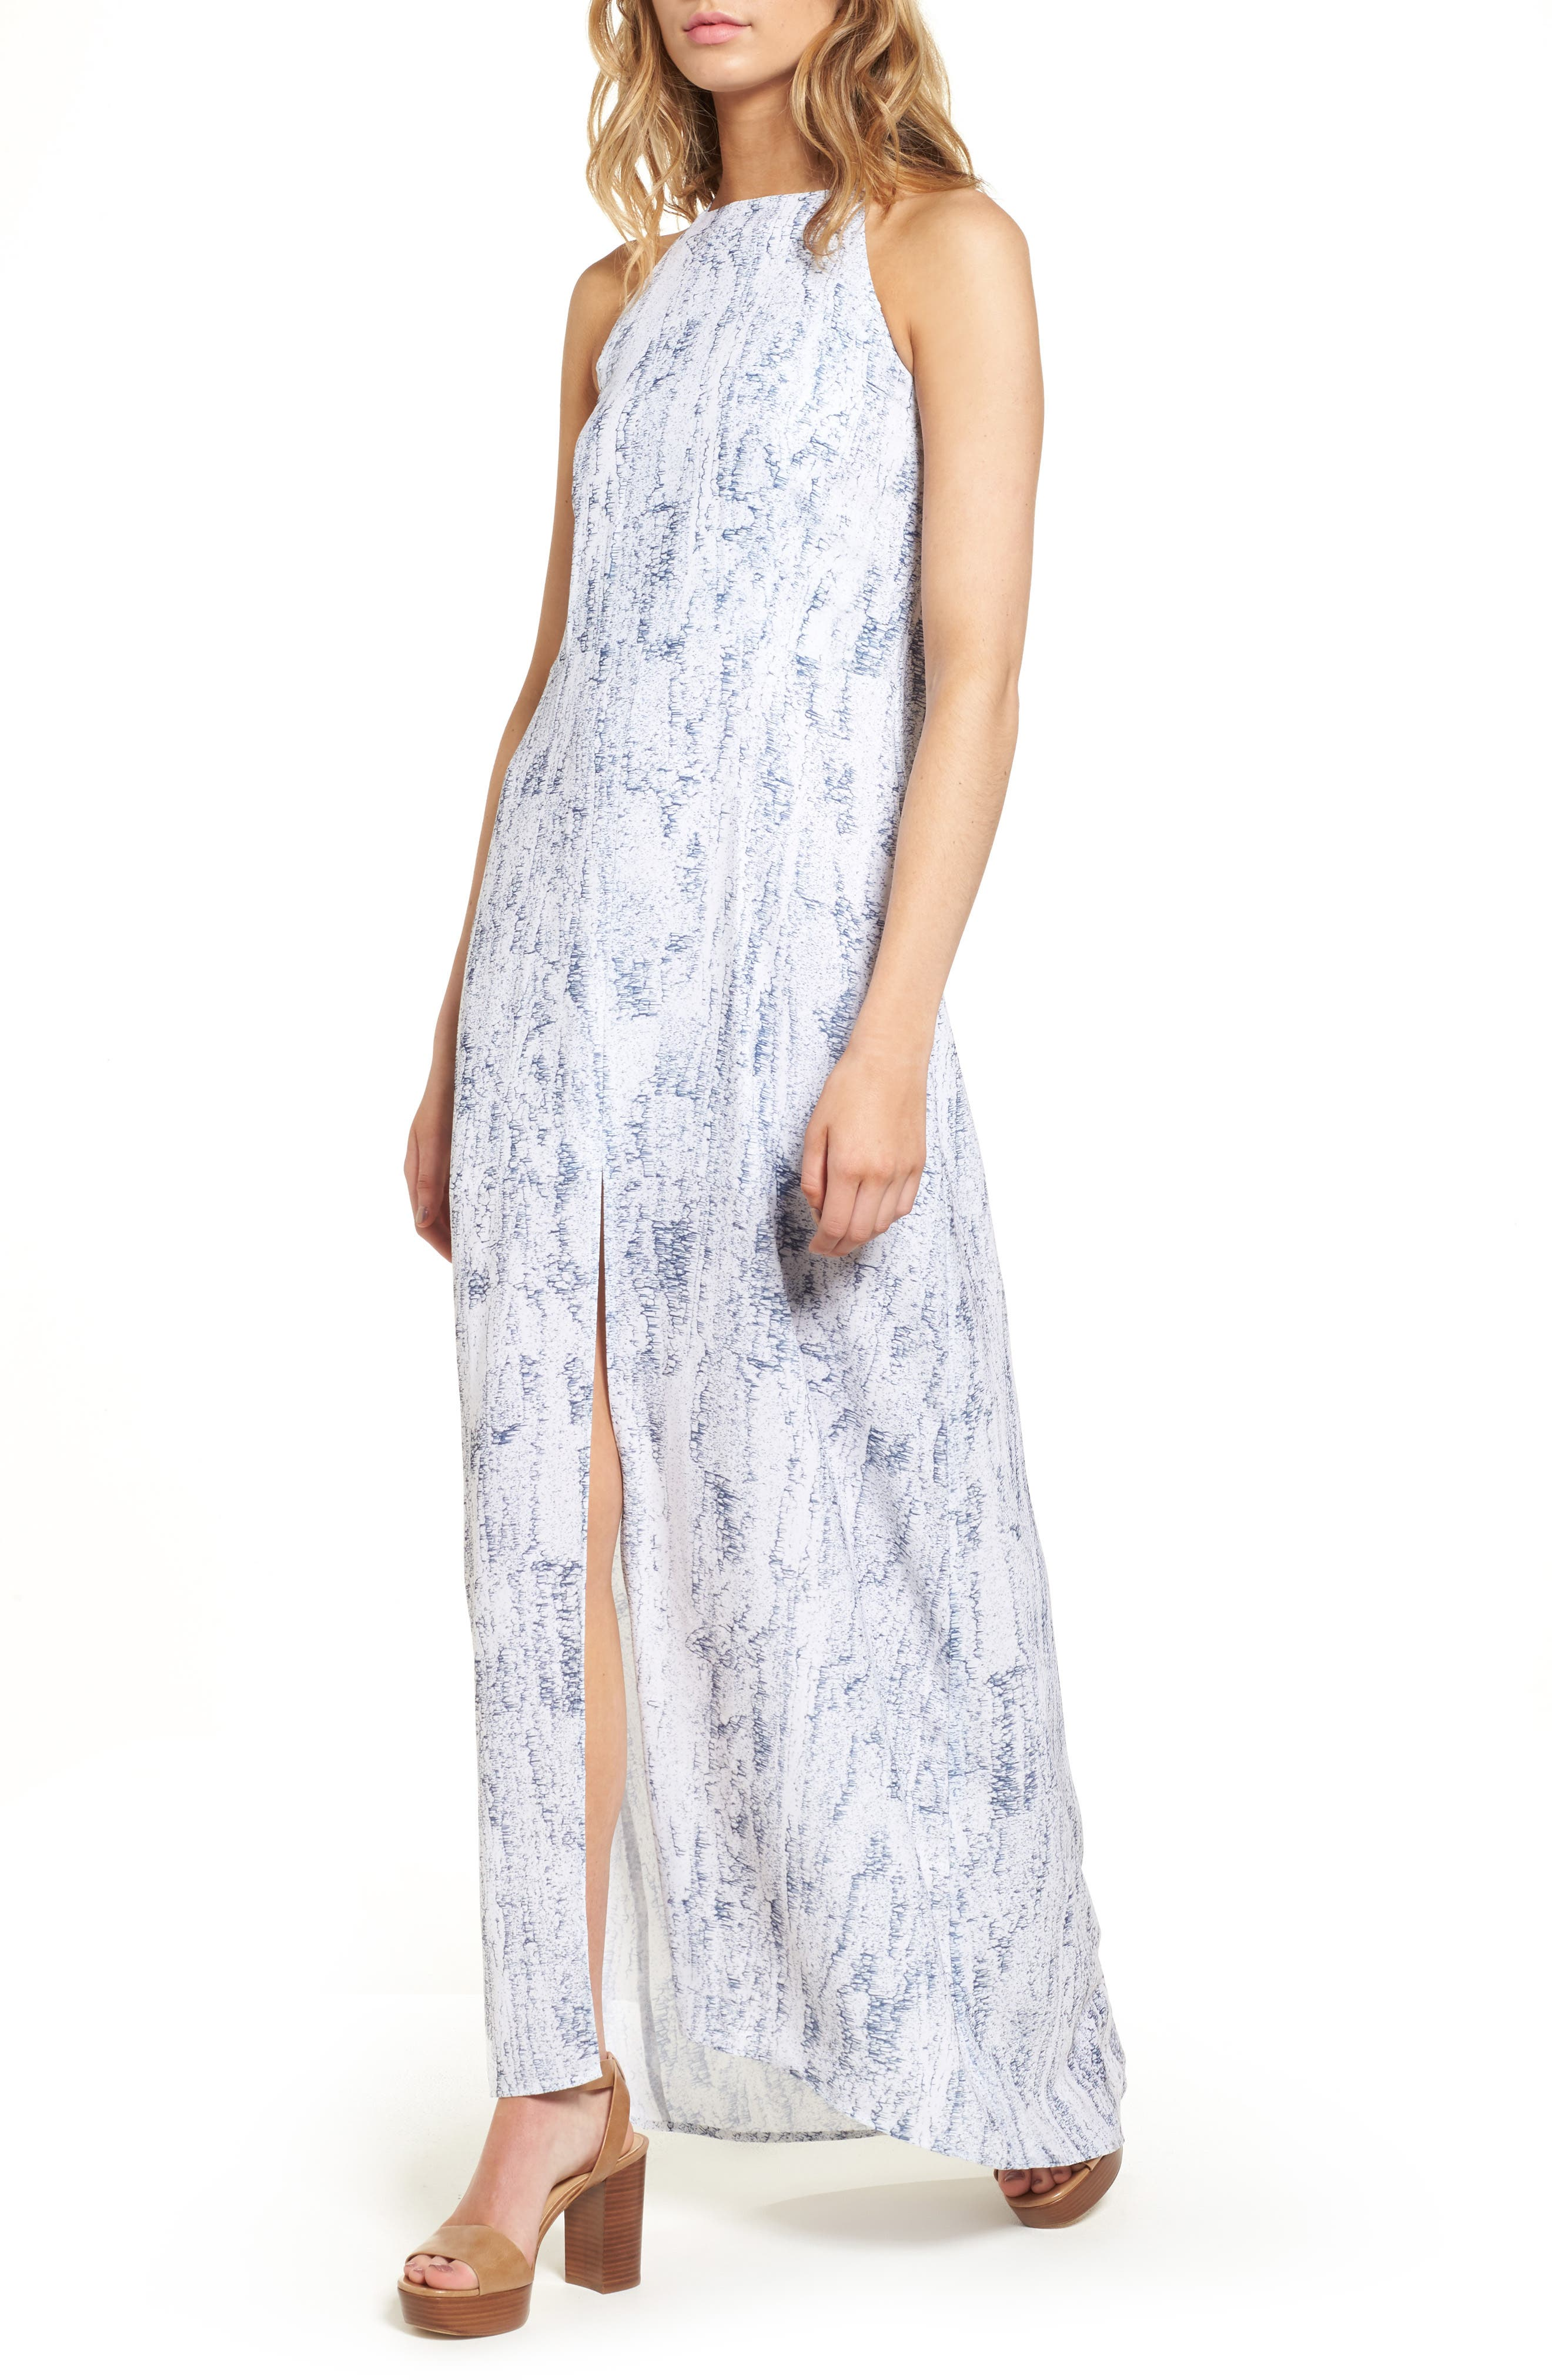 Thieves Like Us Halter Maxi Dress